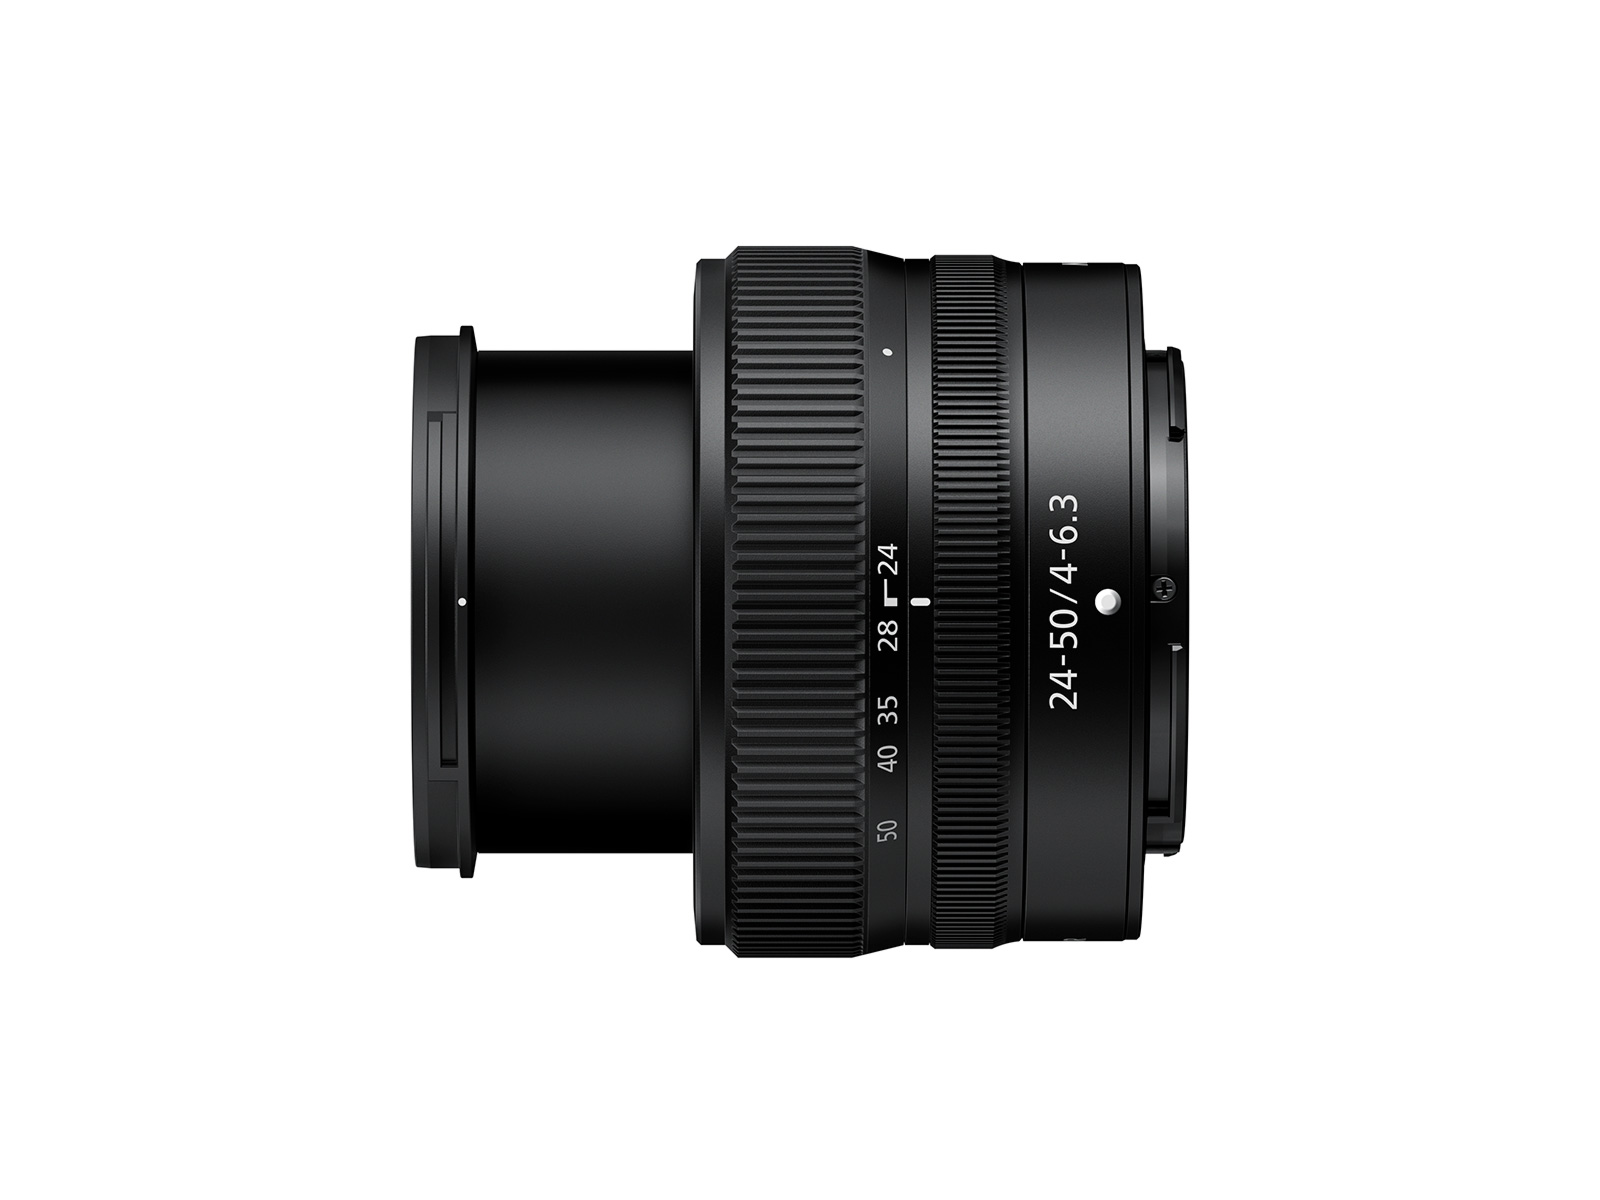 Showing lens extension for Nikon 24-50mm